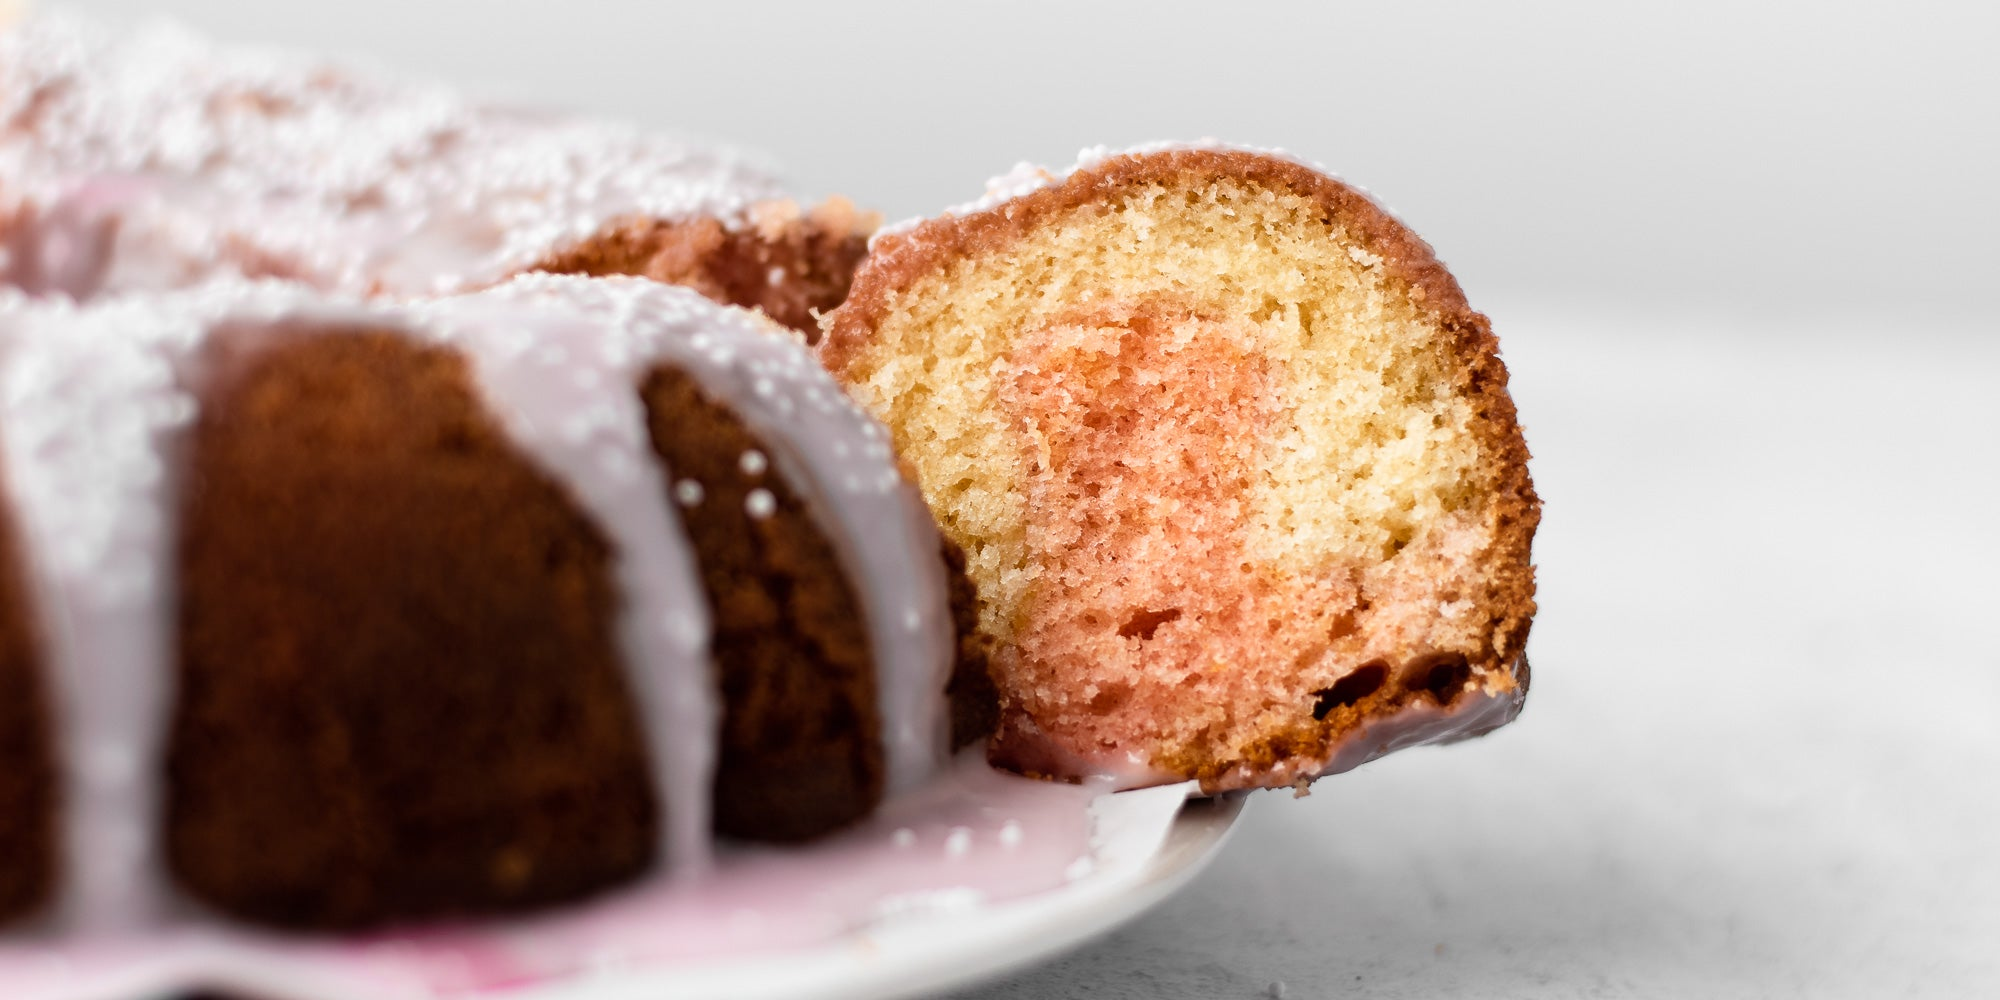 Strawberry Marble Bundt Cake with a slice taken out